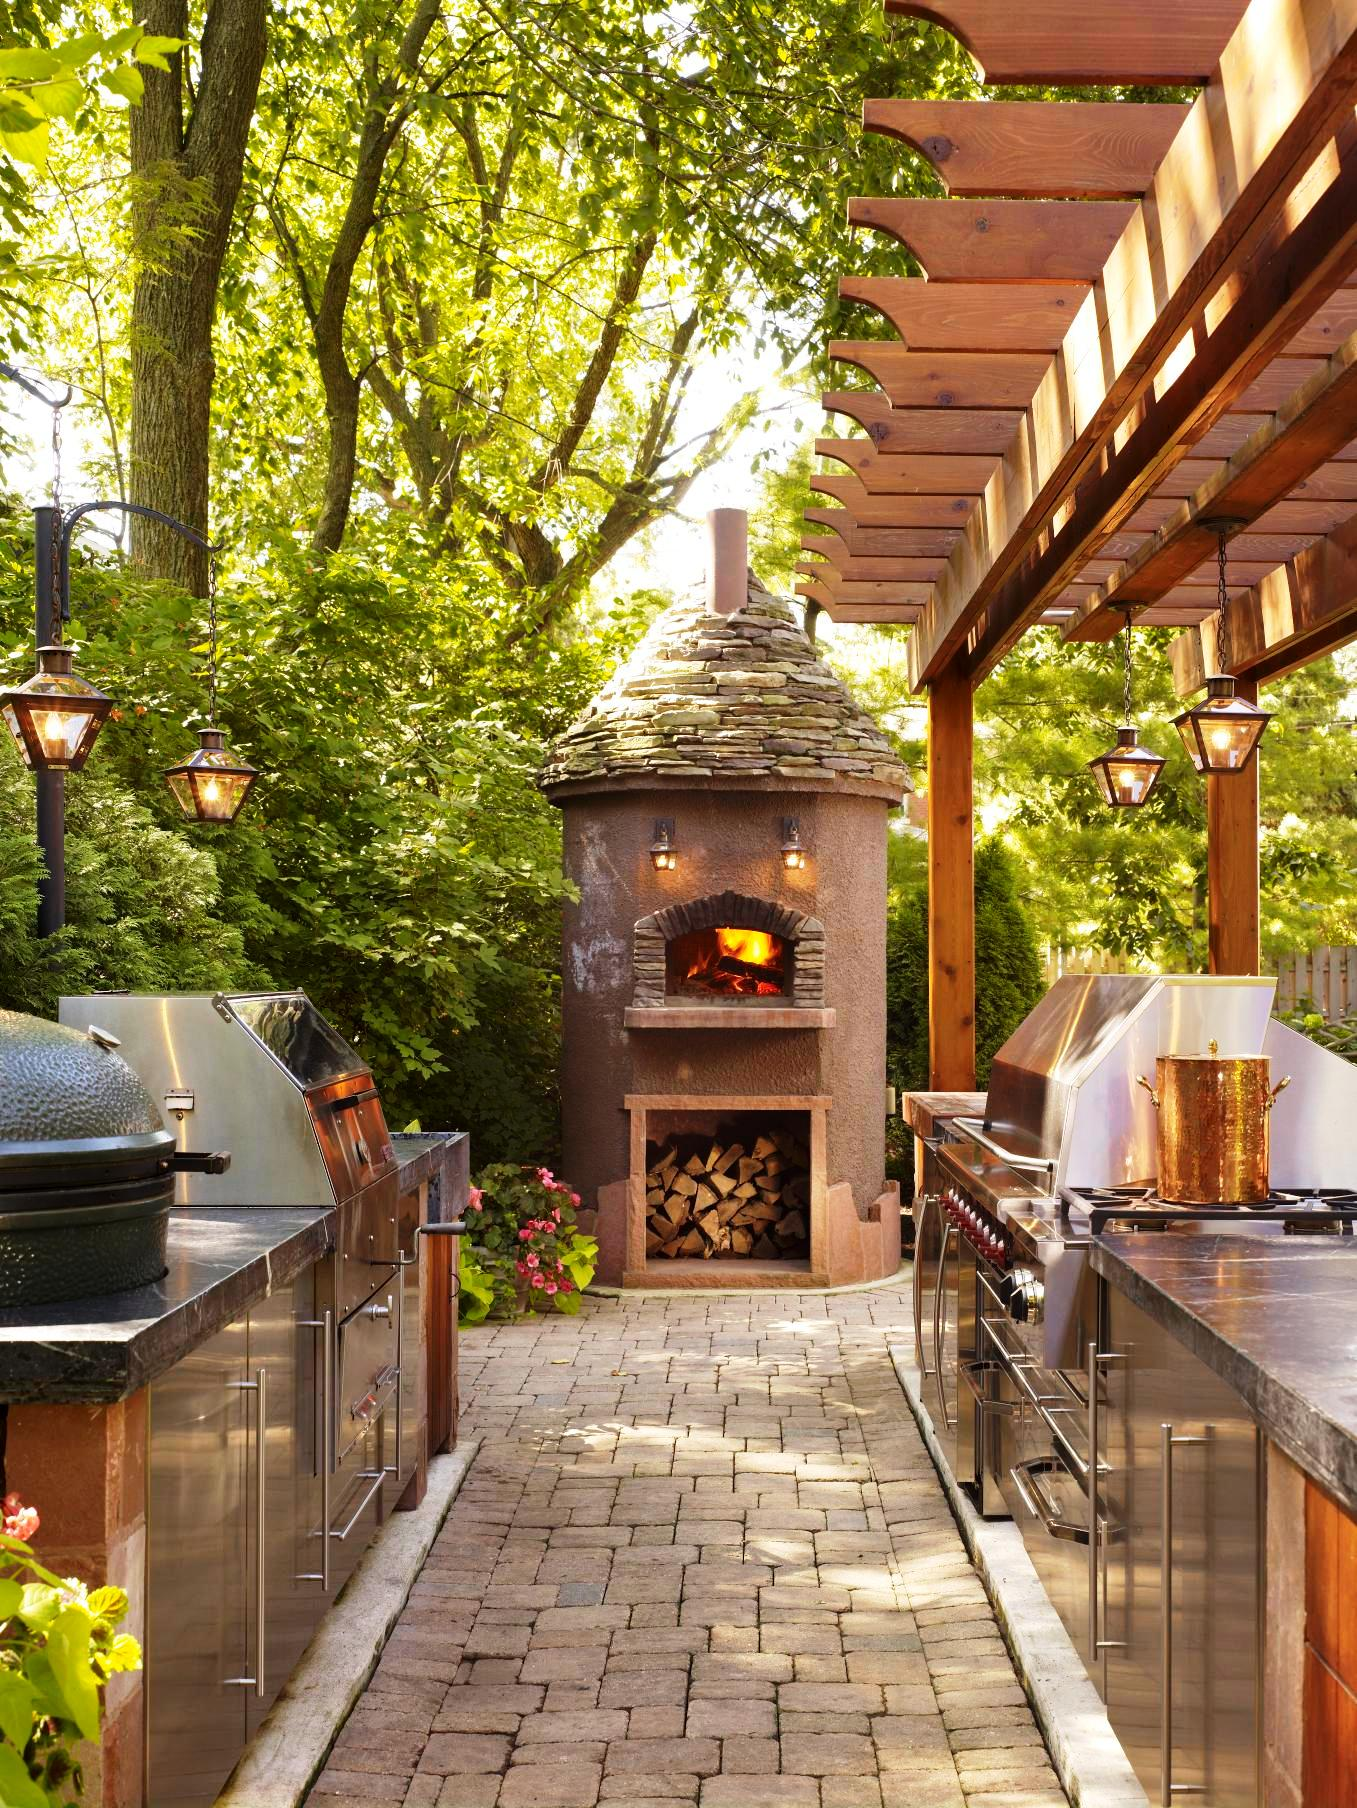 Outdoor Kitchen designs - A Great Way To Enjoy A Beautiful Day